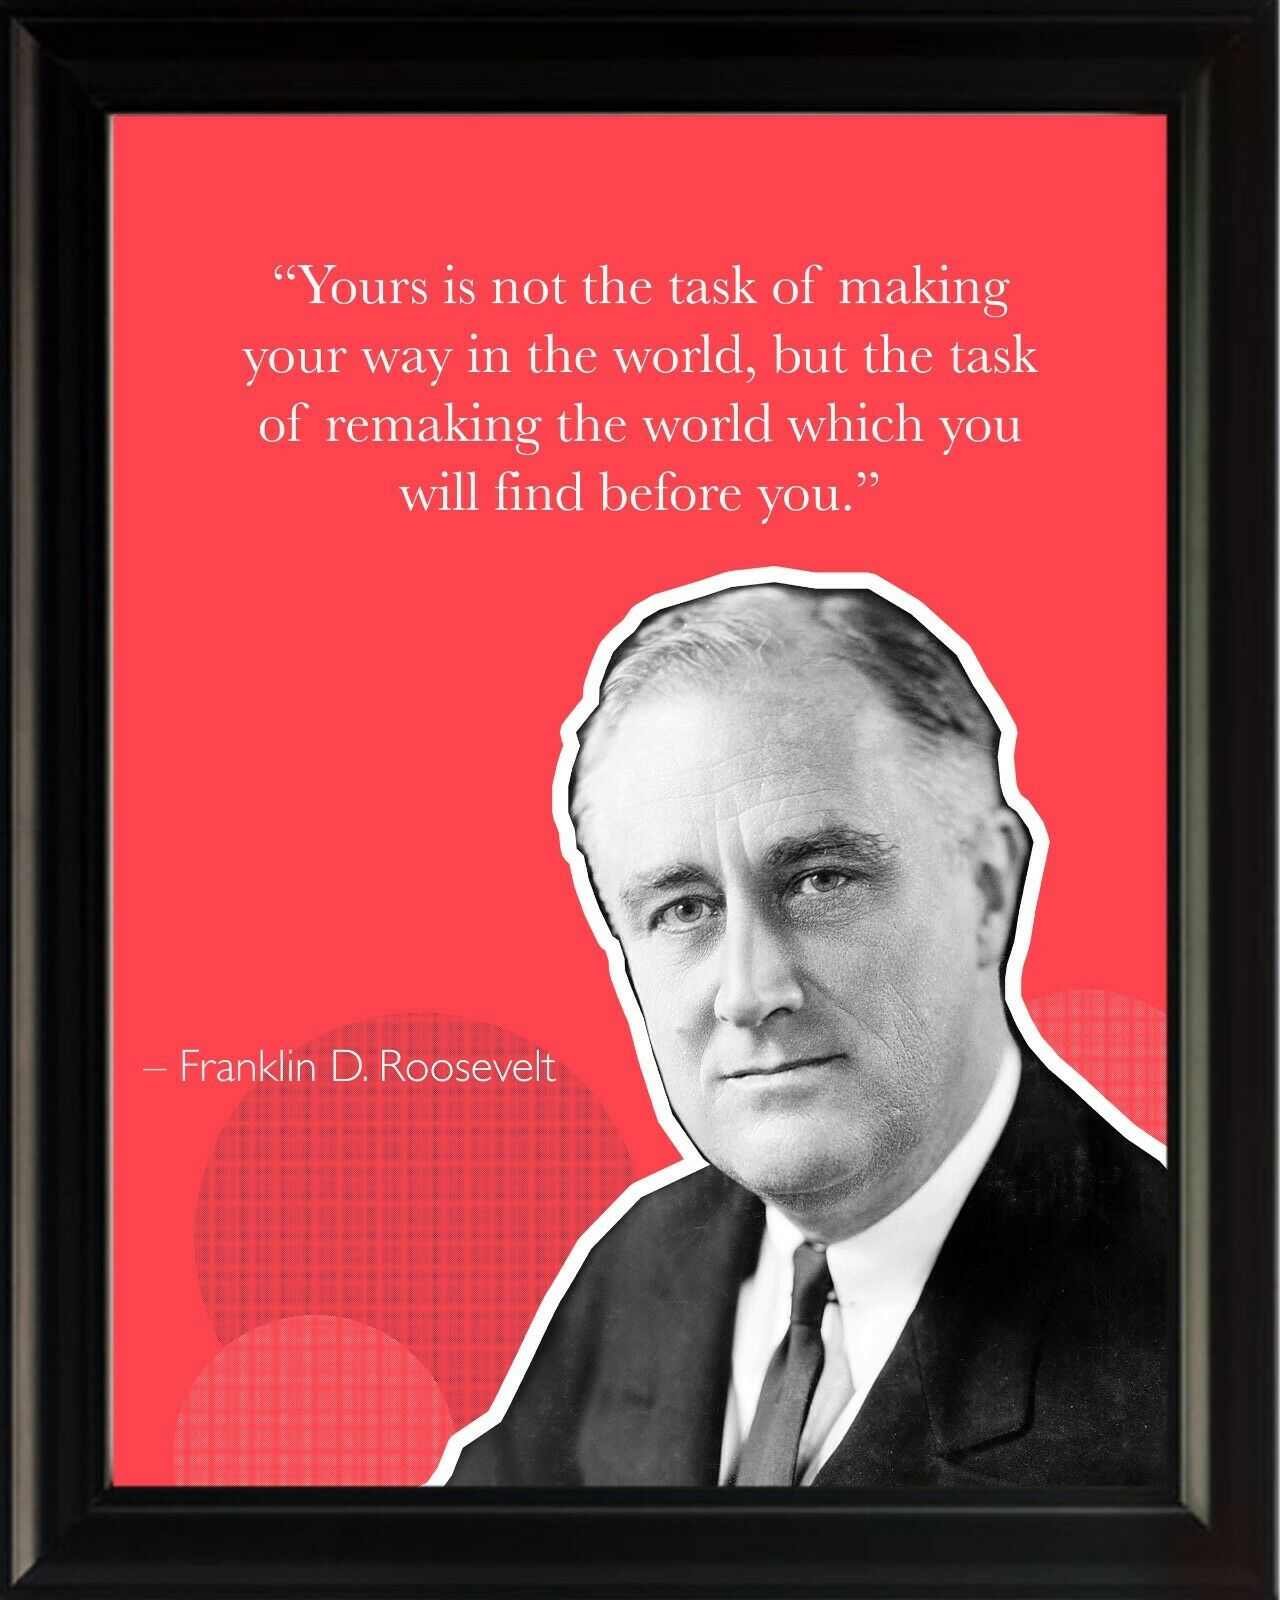 Franklin D. Roosevelt Yours Is Not Poster Print Picture or Framed Wall Art